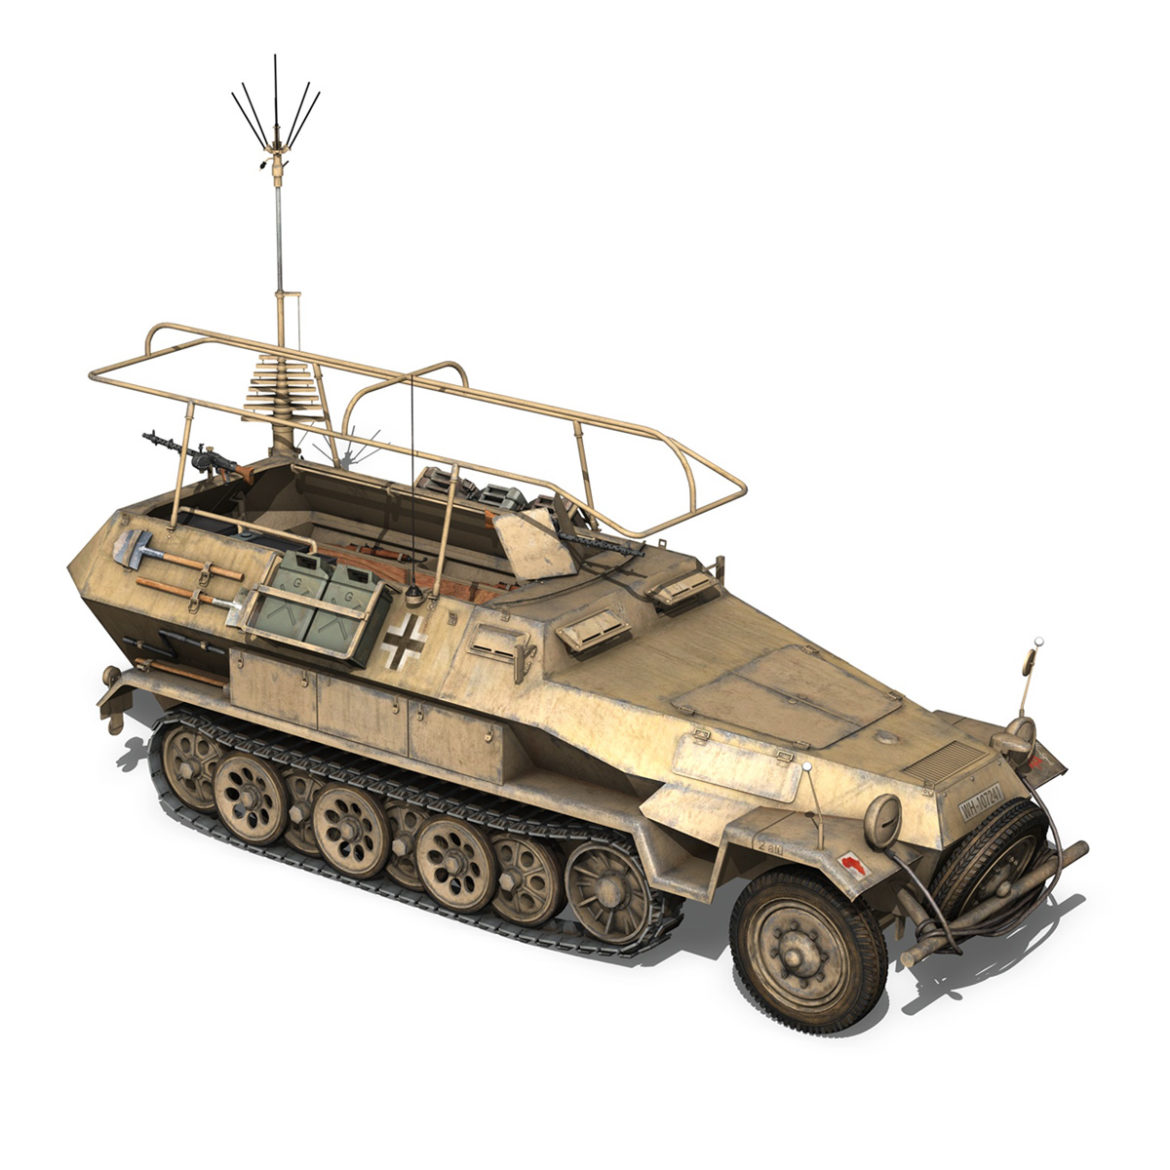 sdkfz 251 ausf.b – communications vehicle – 15pd 3d model 3ds fbx lwo lw lws obj c4d 305993